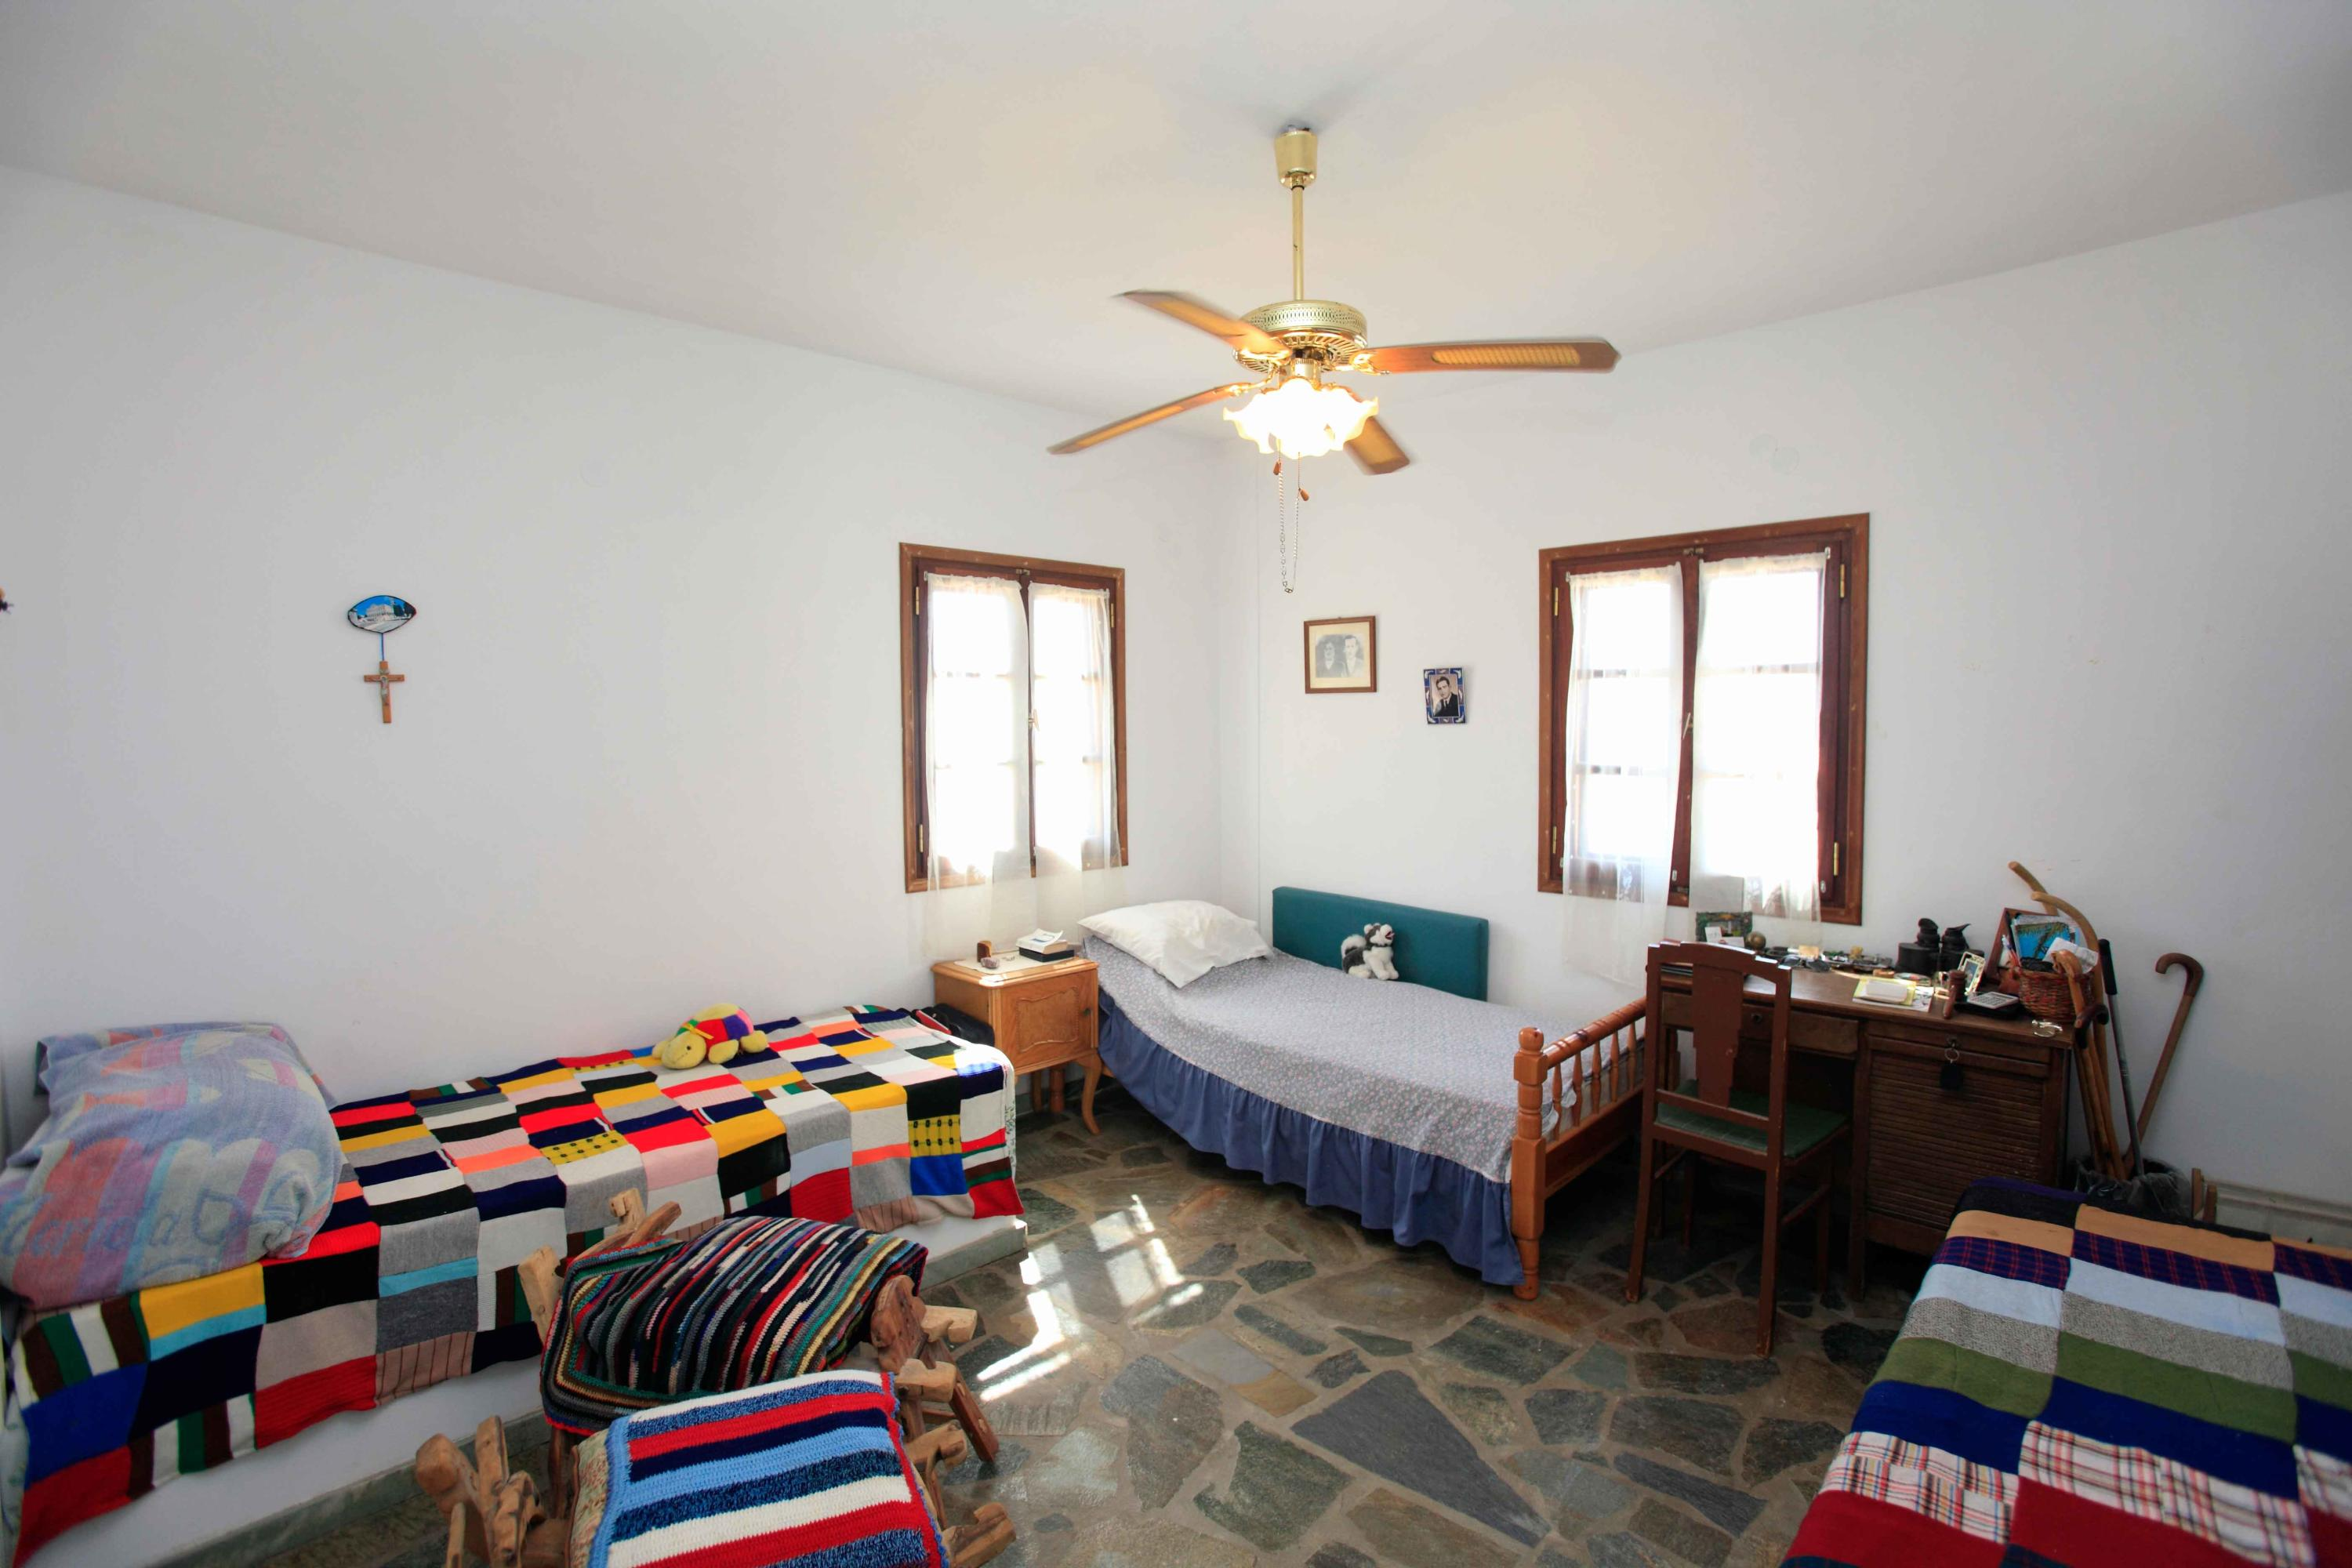 2nd Master Bedroom accommodates 3 beds-1